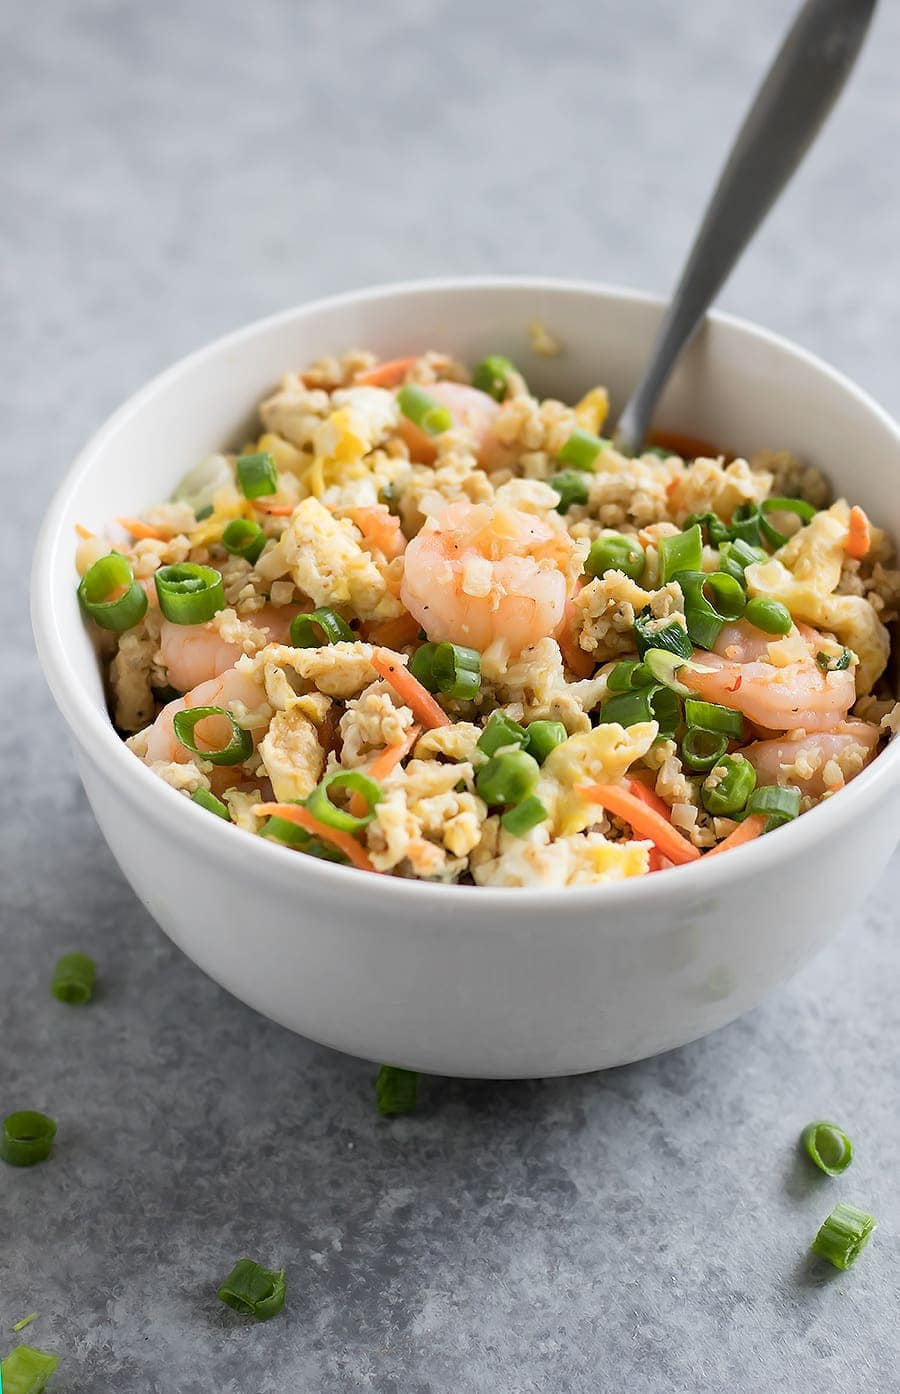 Forget takeout. Make Cauliflower Shrimp Fried Rice at home using riced cauliflower, carrots, peas, onions, garlic, and coconut aminos in just 15 minutes!